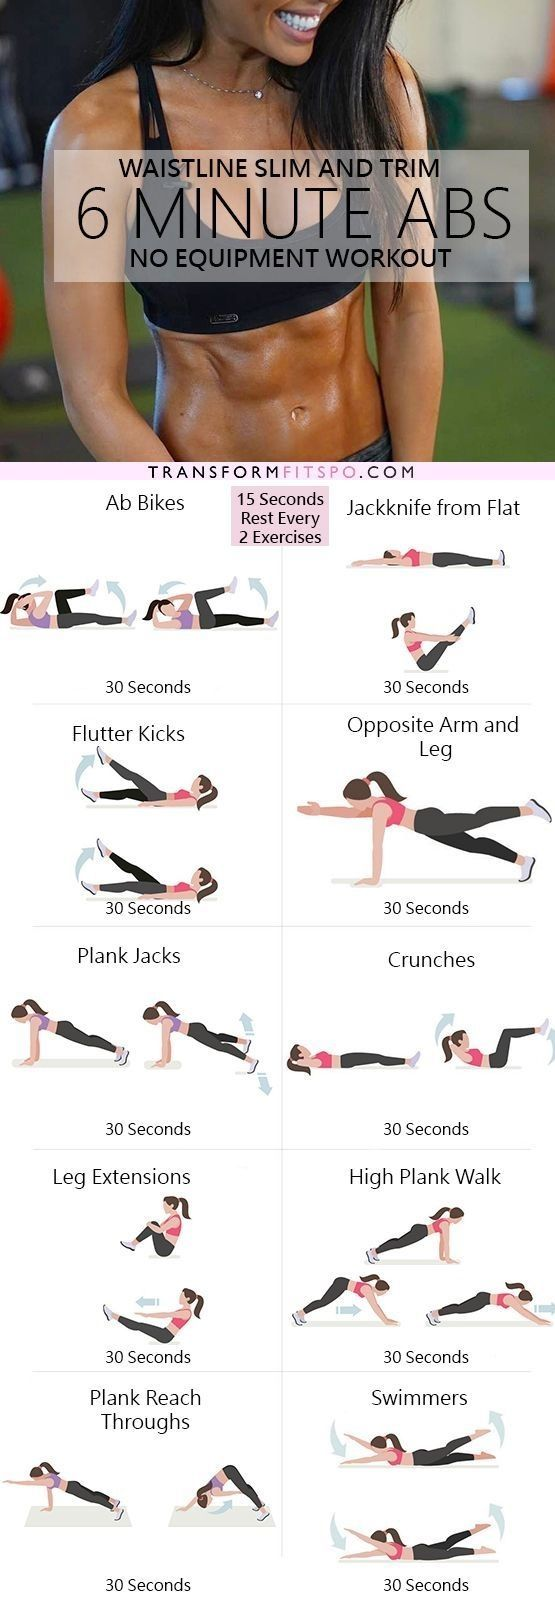 Get Slim and Trim with this 6 Minute Abs Workout by chasity